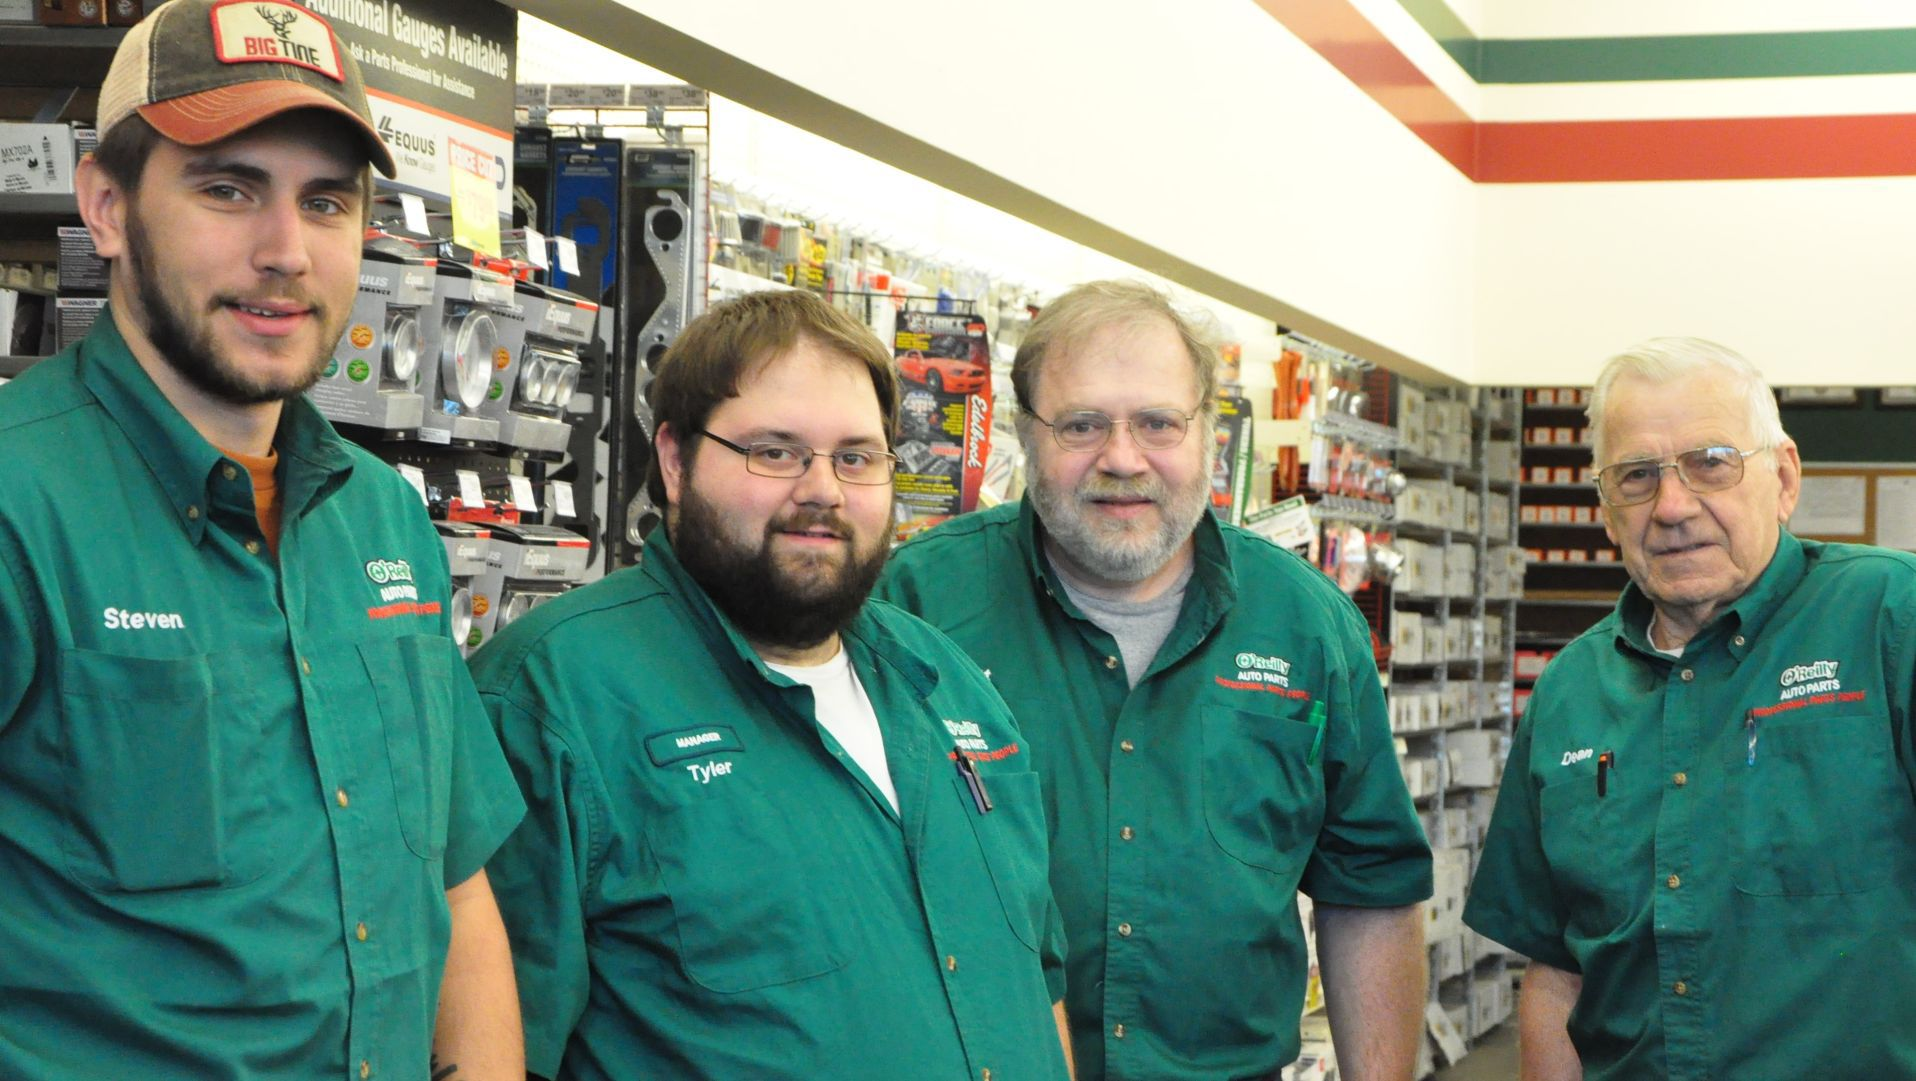 O'Reilly Auto Parts opens St. Peter location | News | southernminn.com